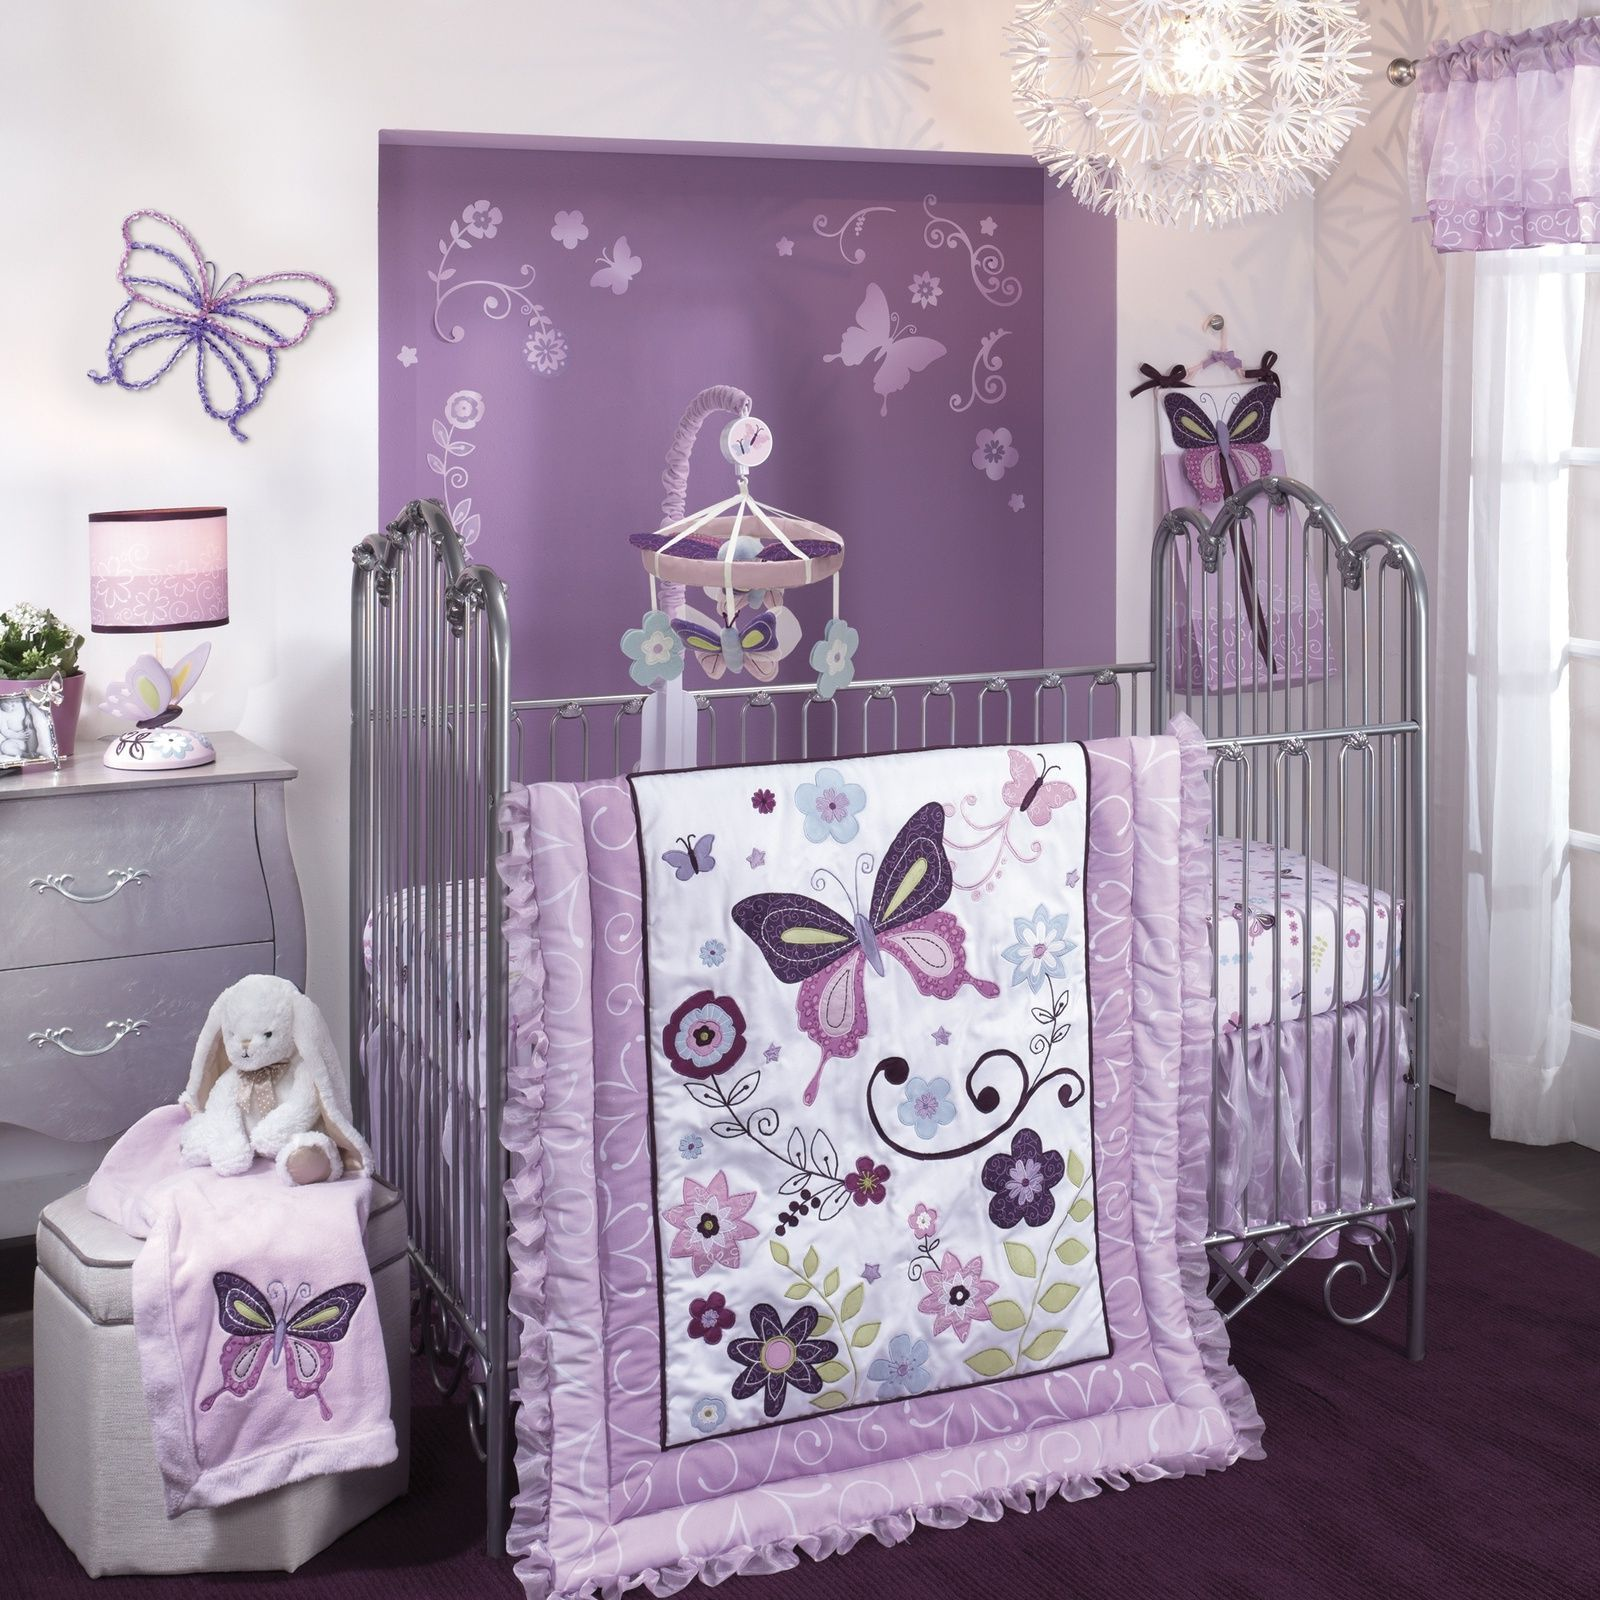 Baby Room Themes Girl Bedroom Cozy Purple Theme Girl Nursery Ideas Lambs And